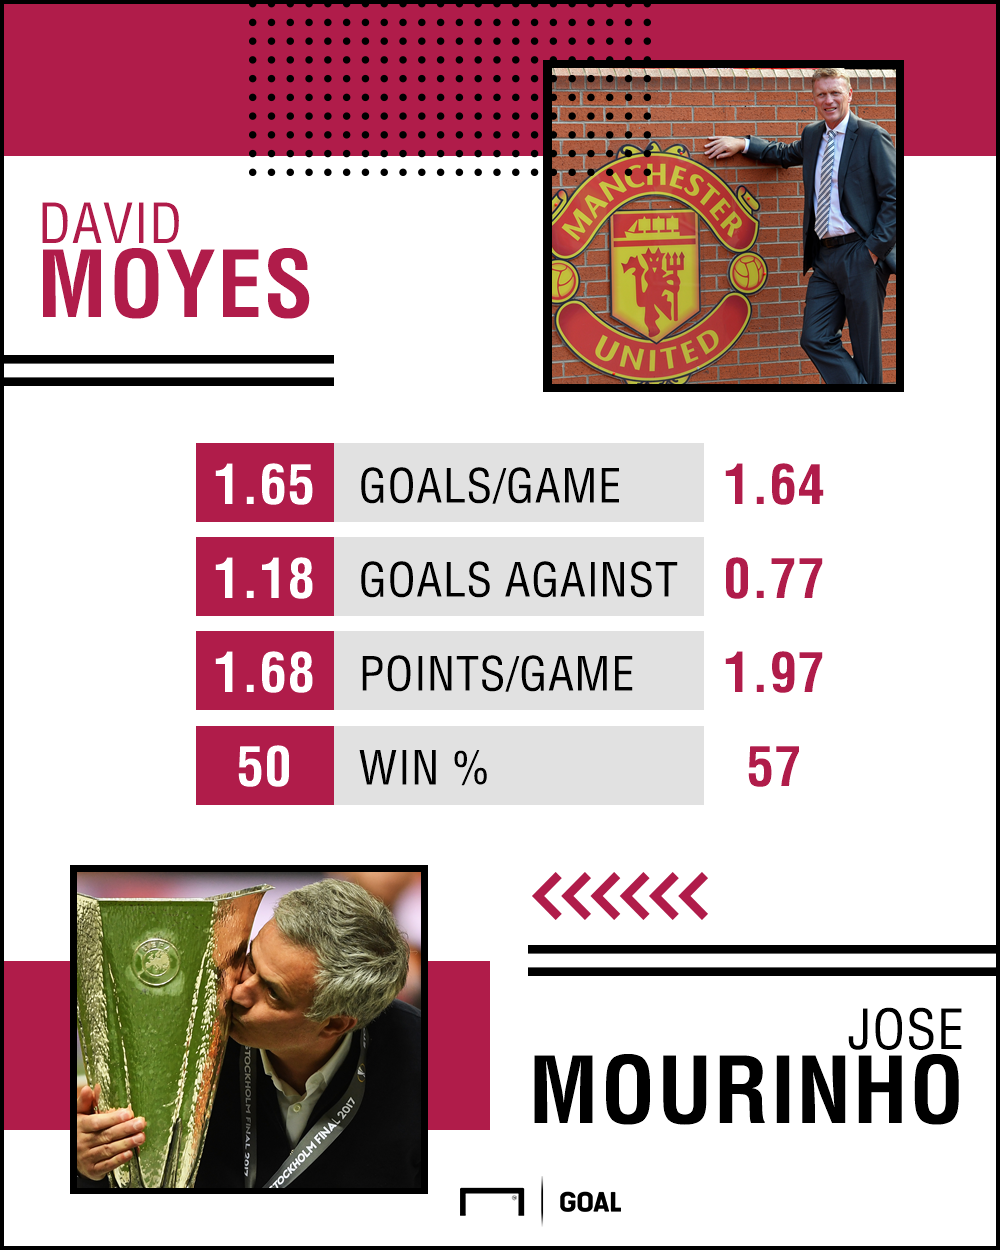 Manchester United David Moyes Jose Mourinho